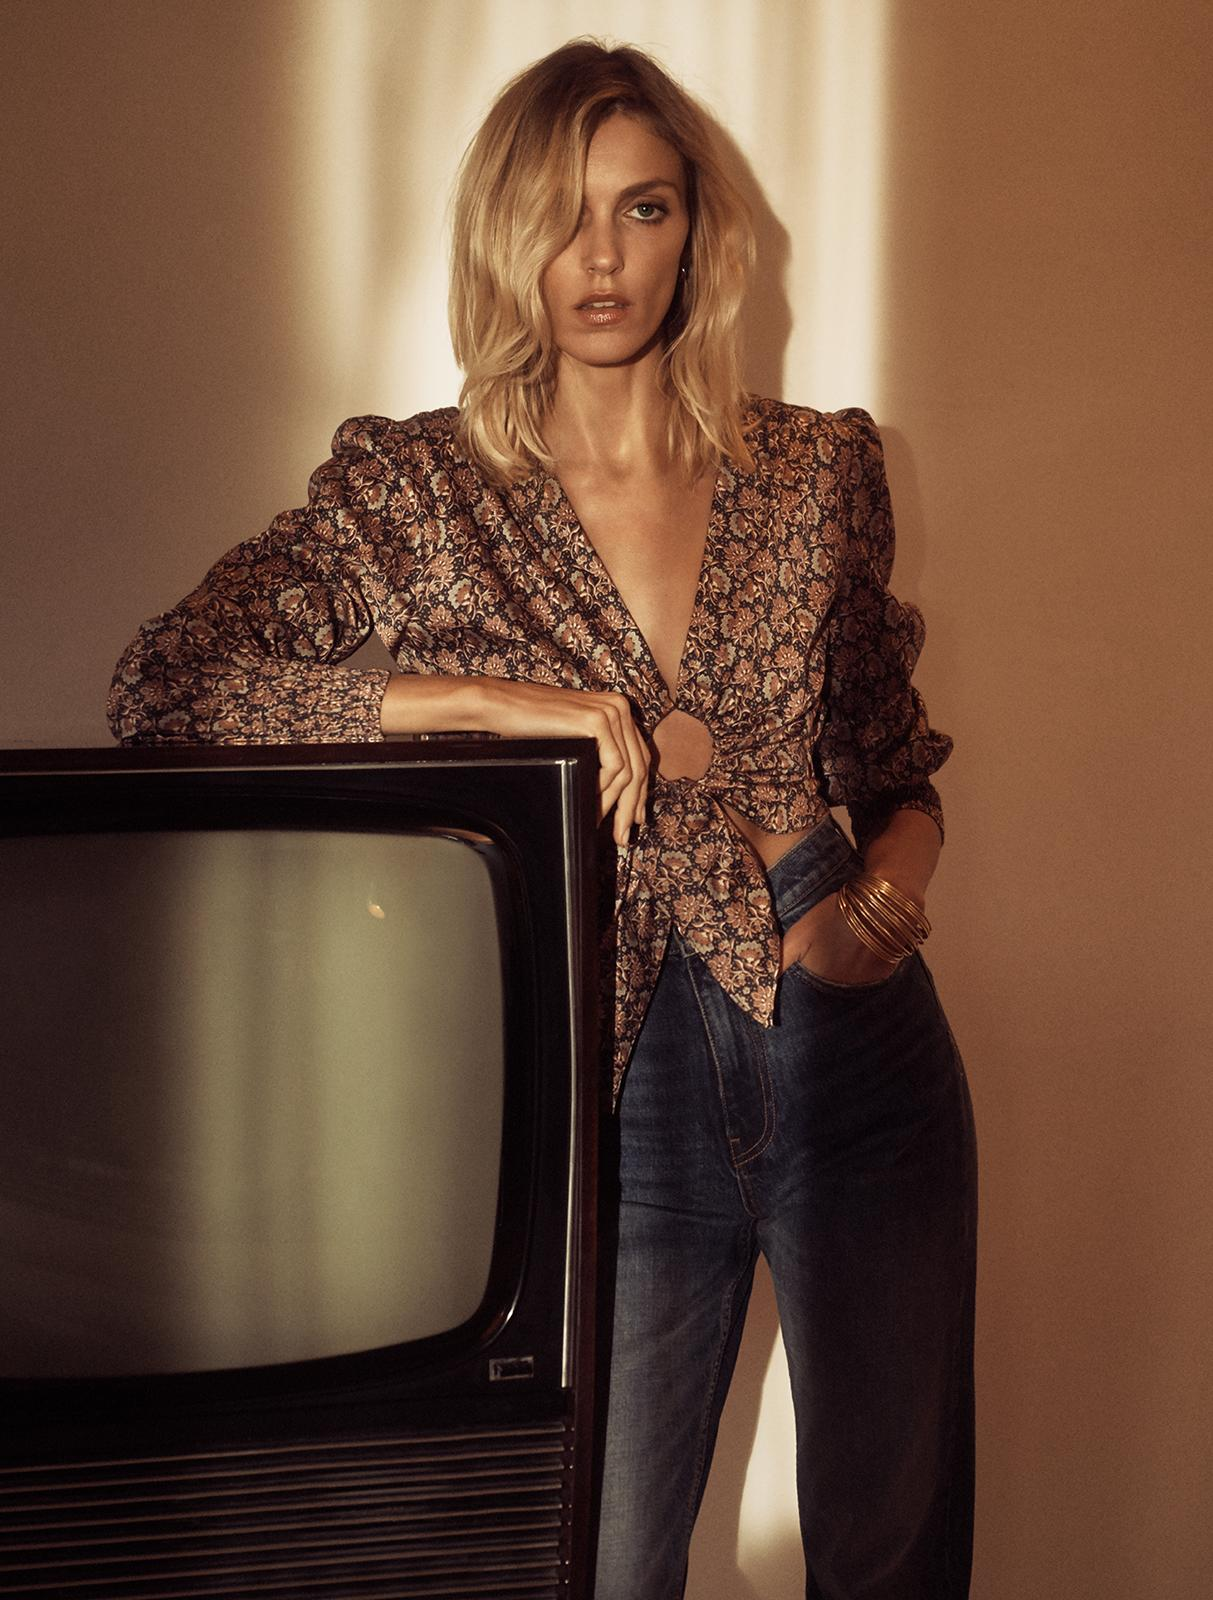 Zara 'Born in the 70s' Spring 2020 Fashion Collection Photos